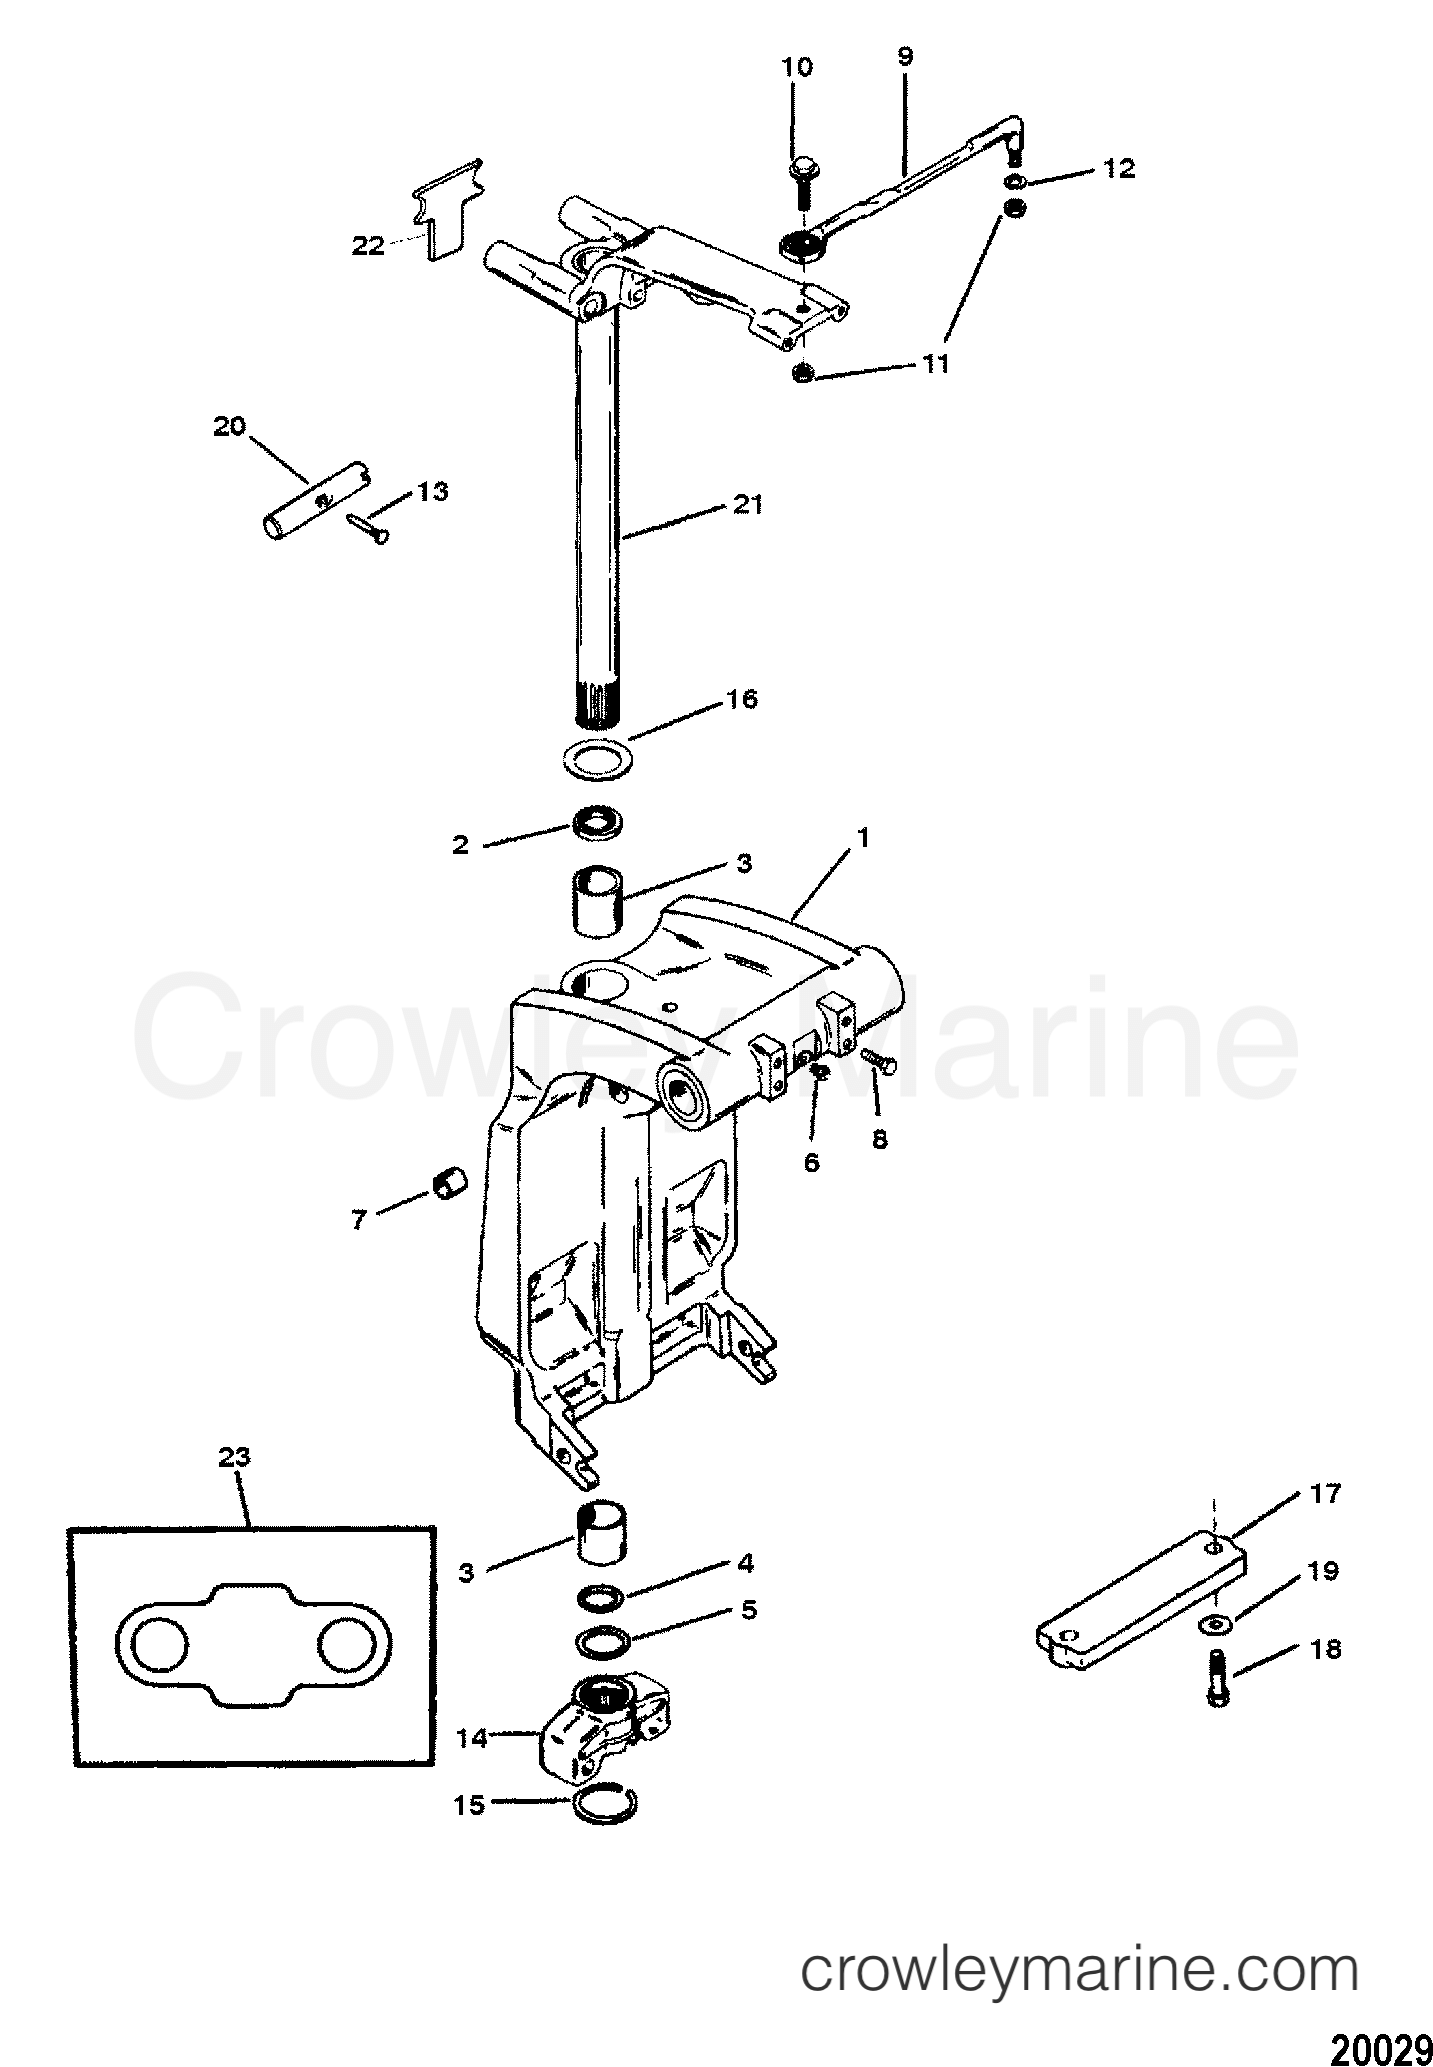 1996 force outboard engine diagram